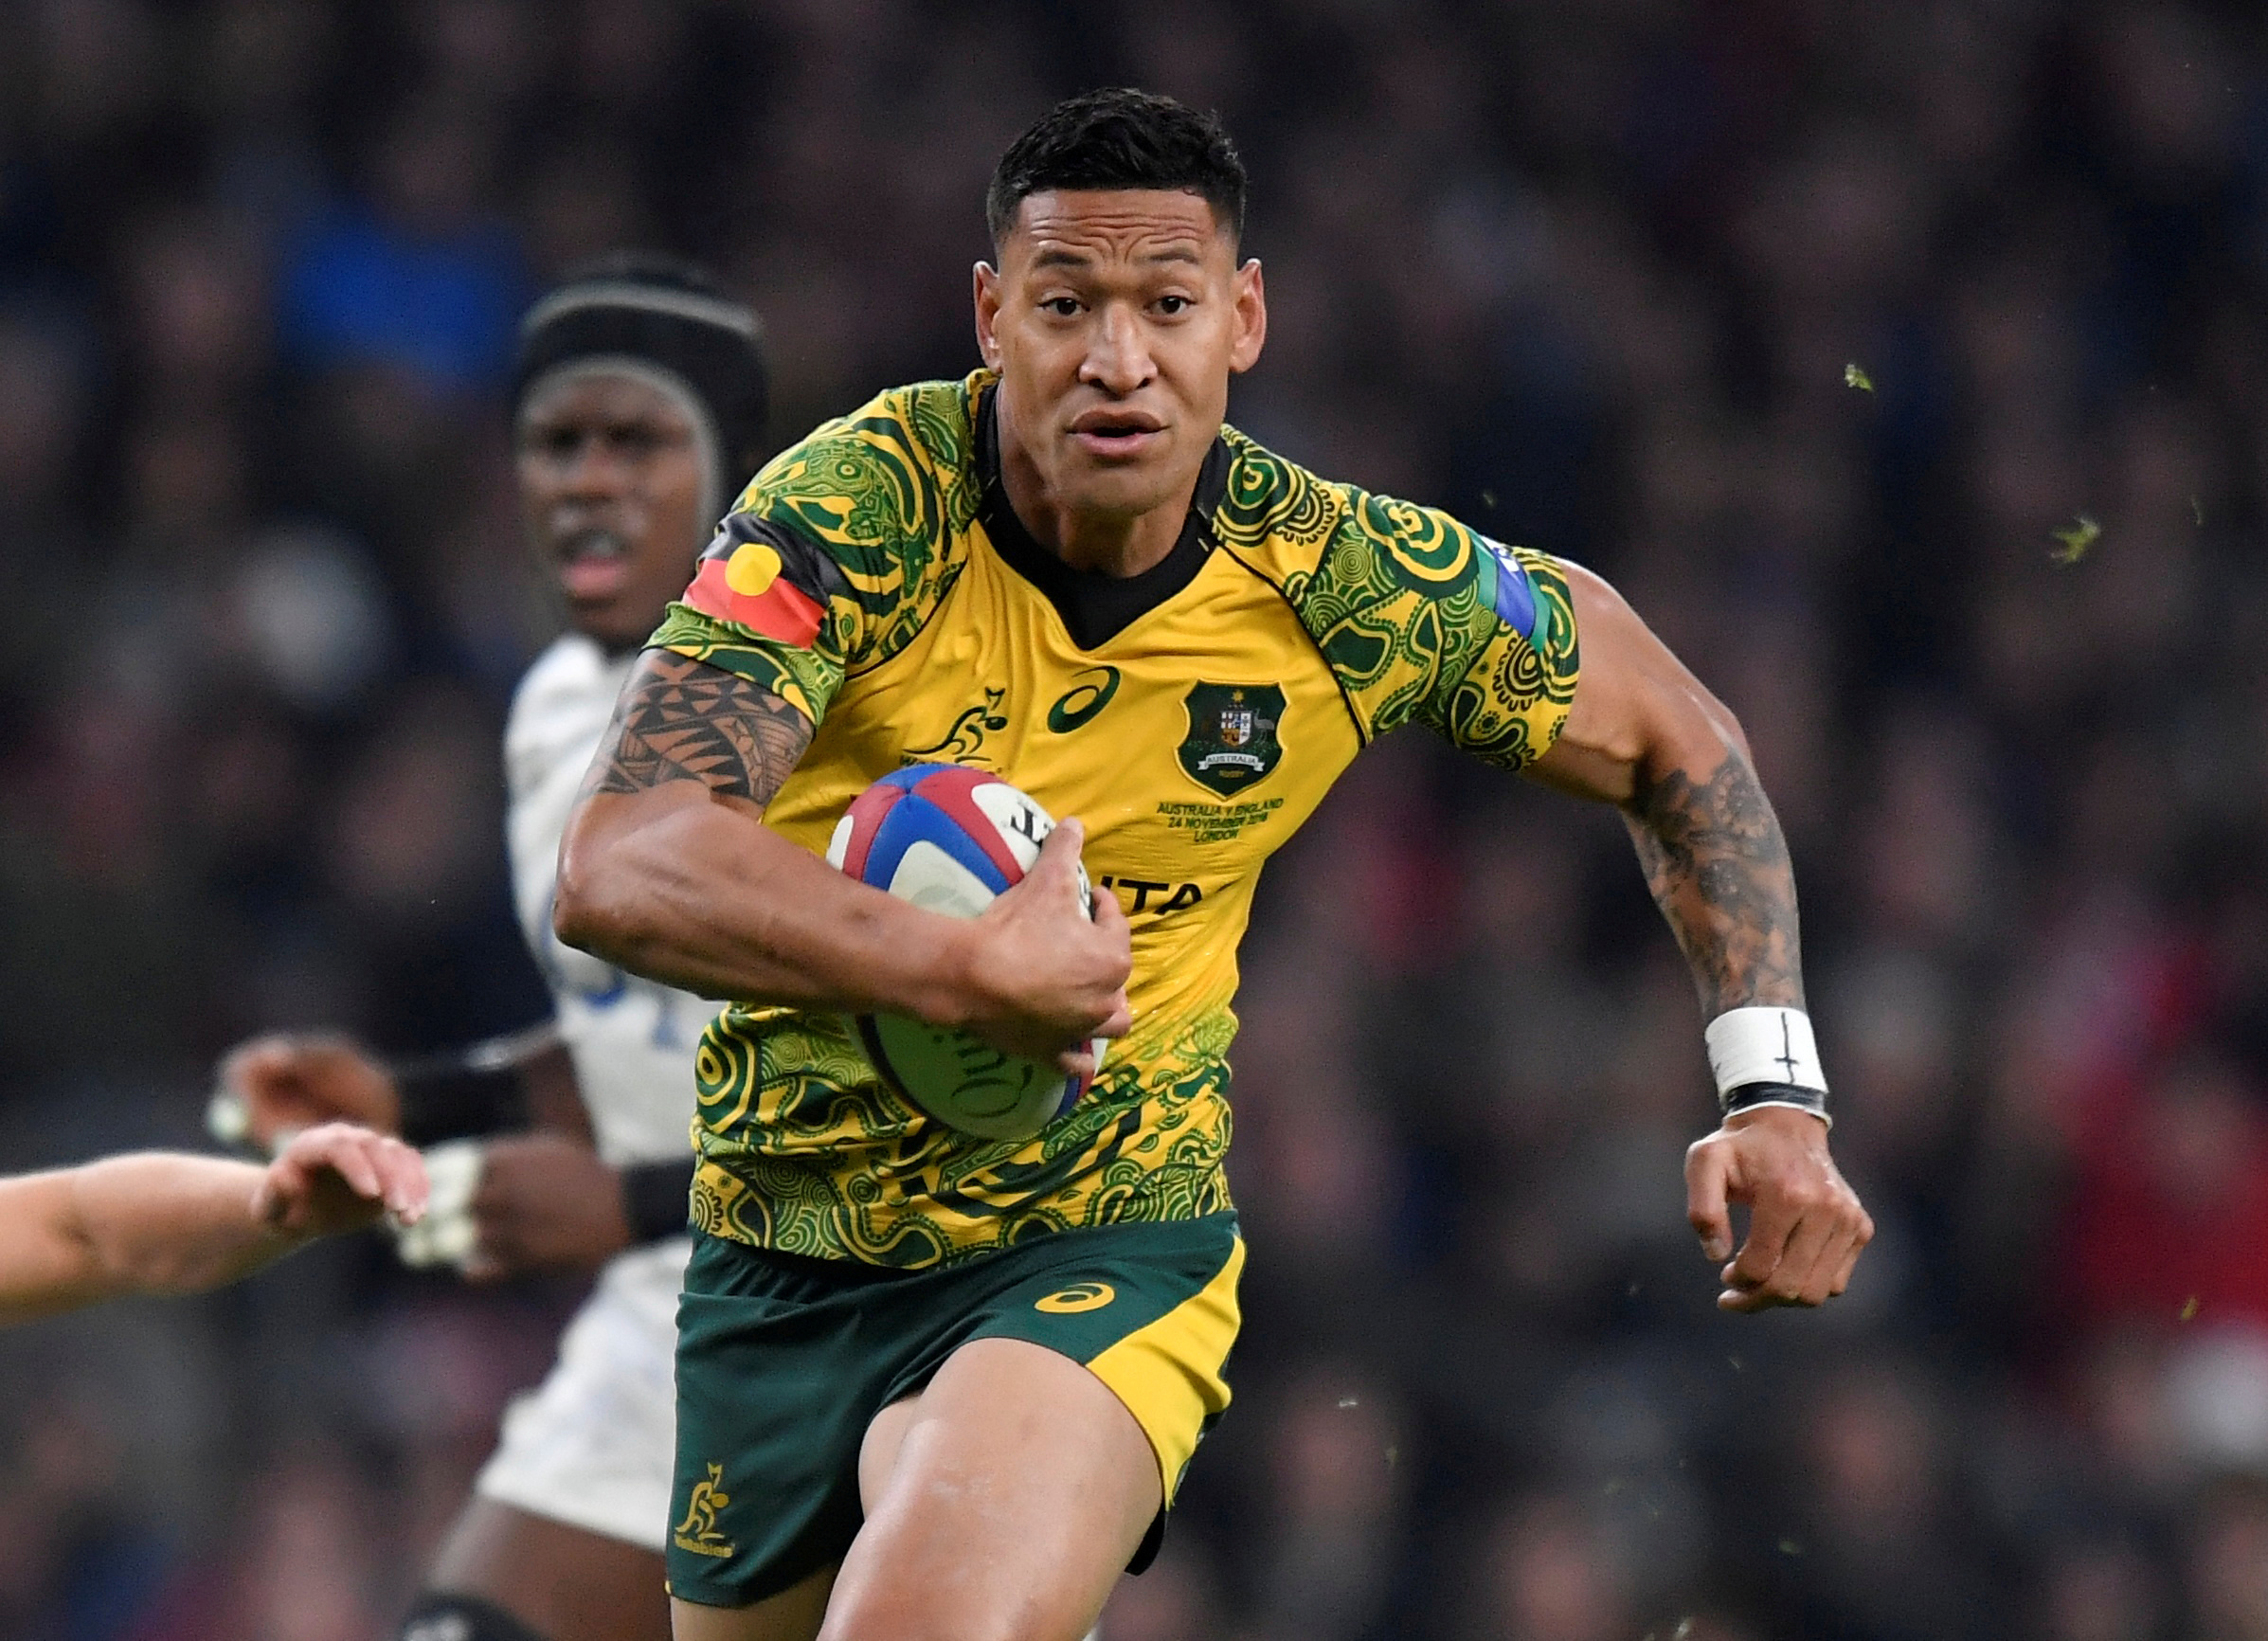 Israel Folau sparked outrage with the homophobic rant on social media